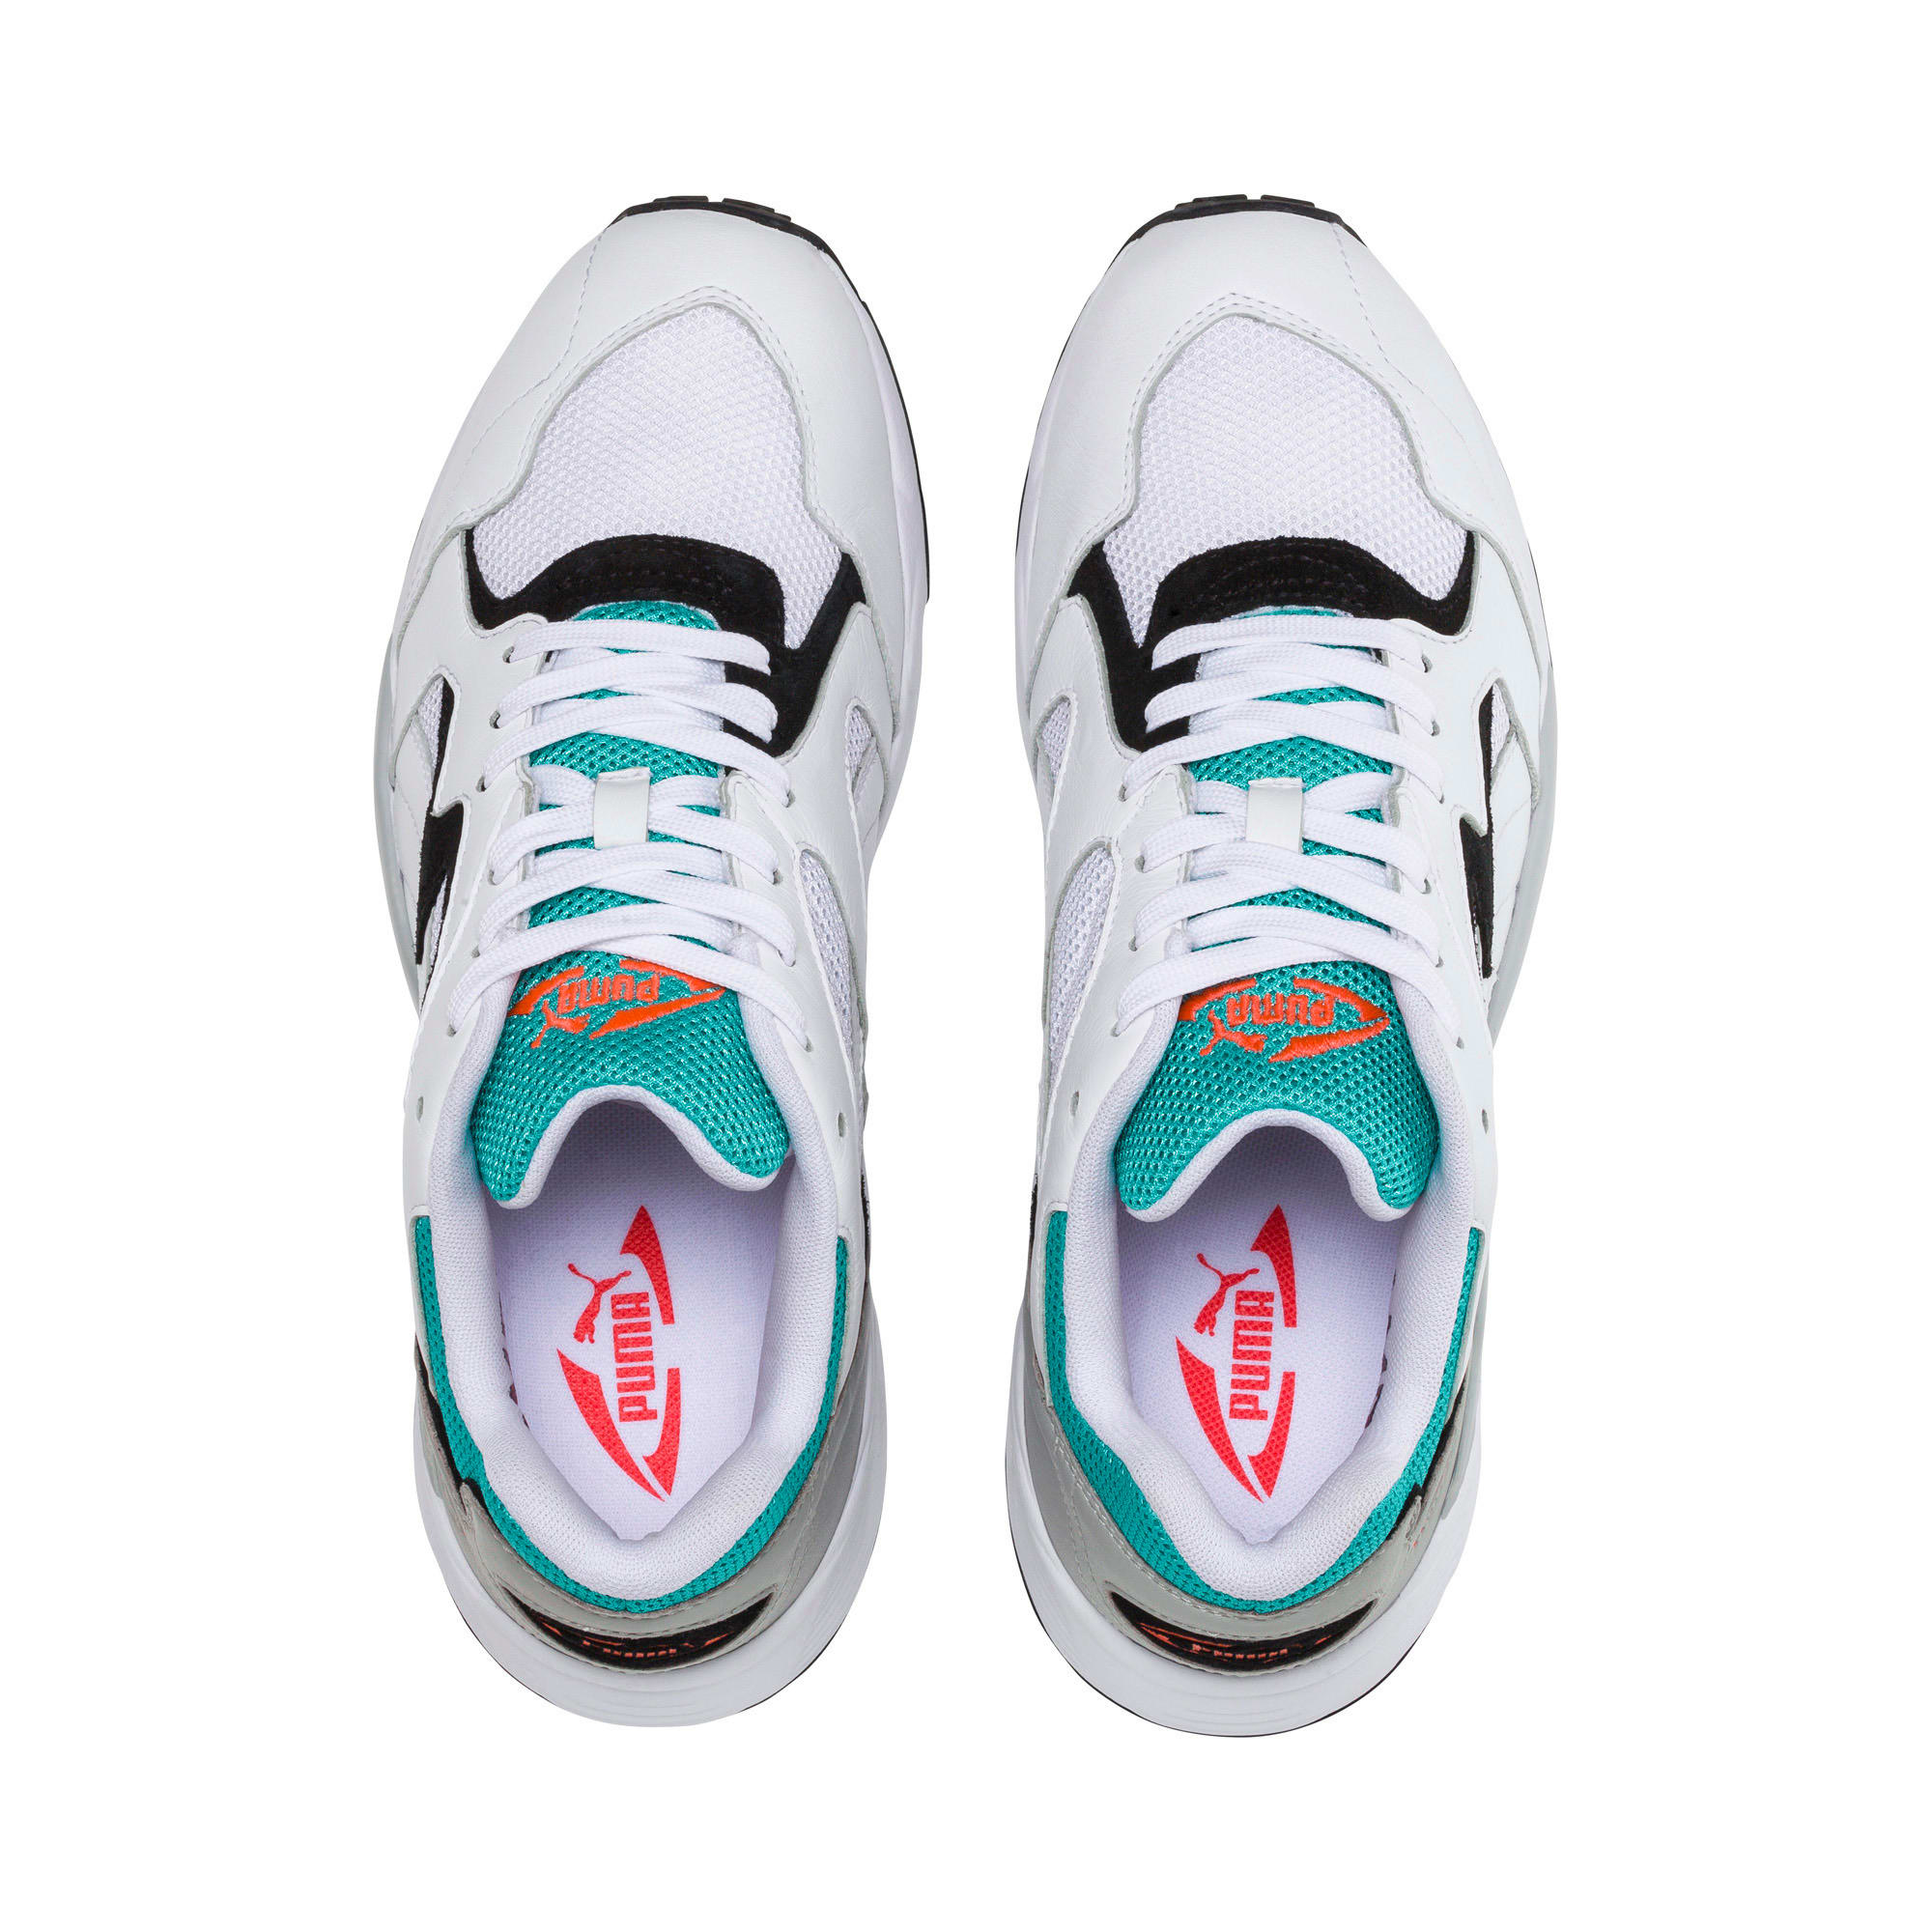 Thumbnail 6 of Prevail Classic Trainers, Puma White-Blue Turquoise, medium